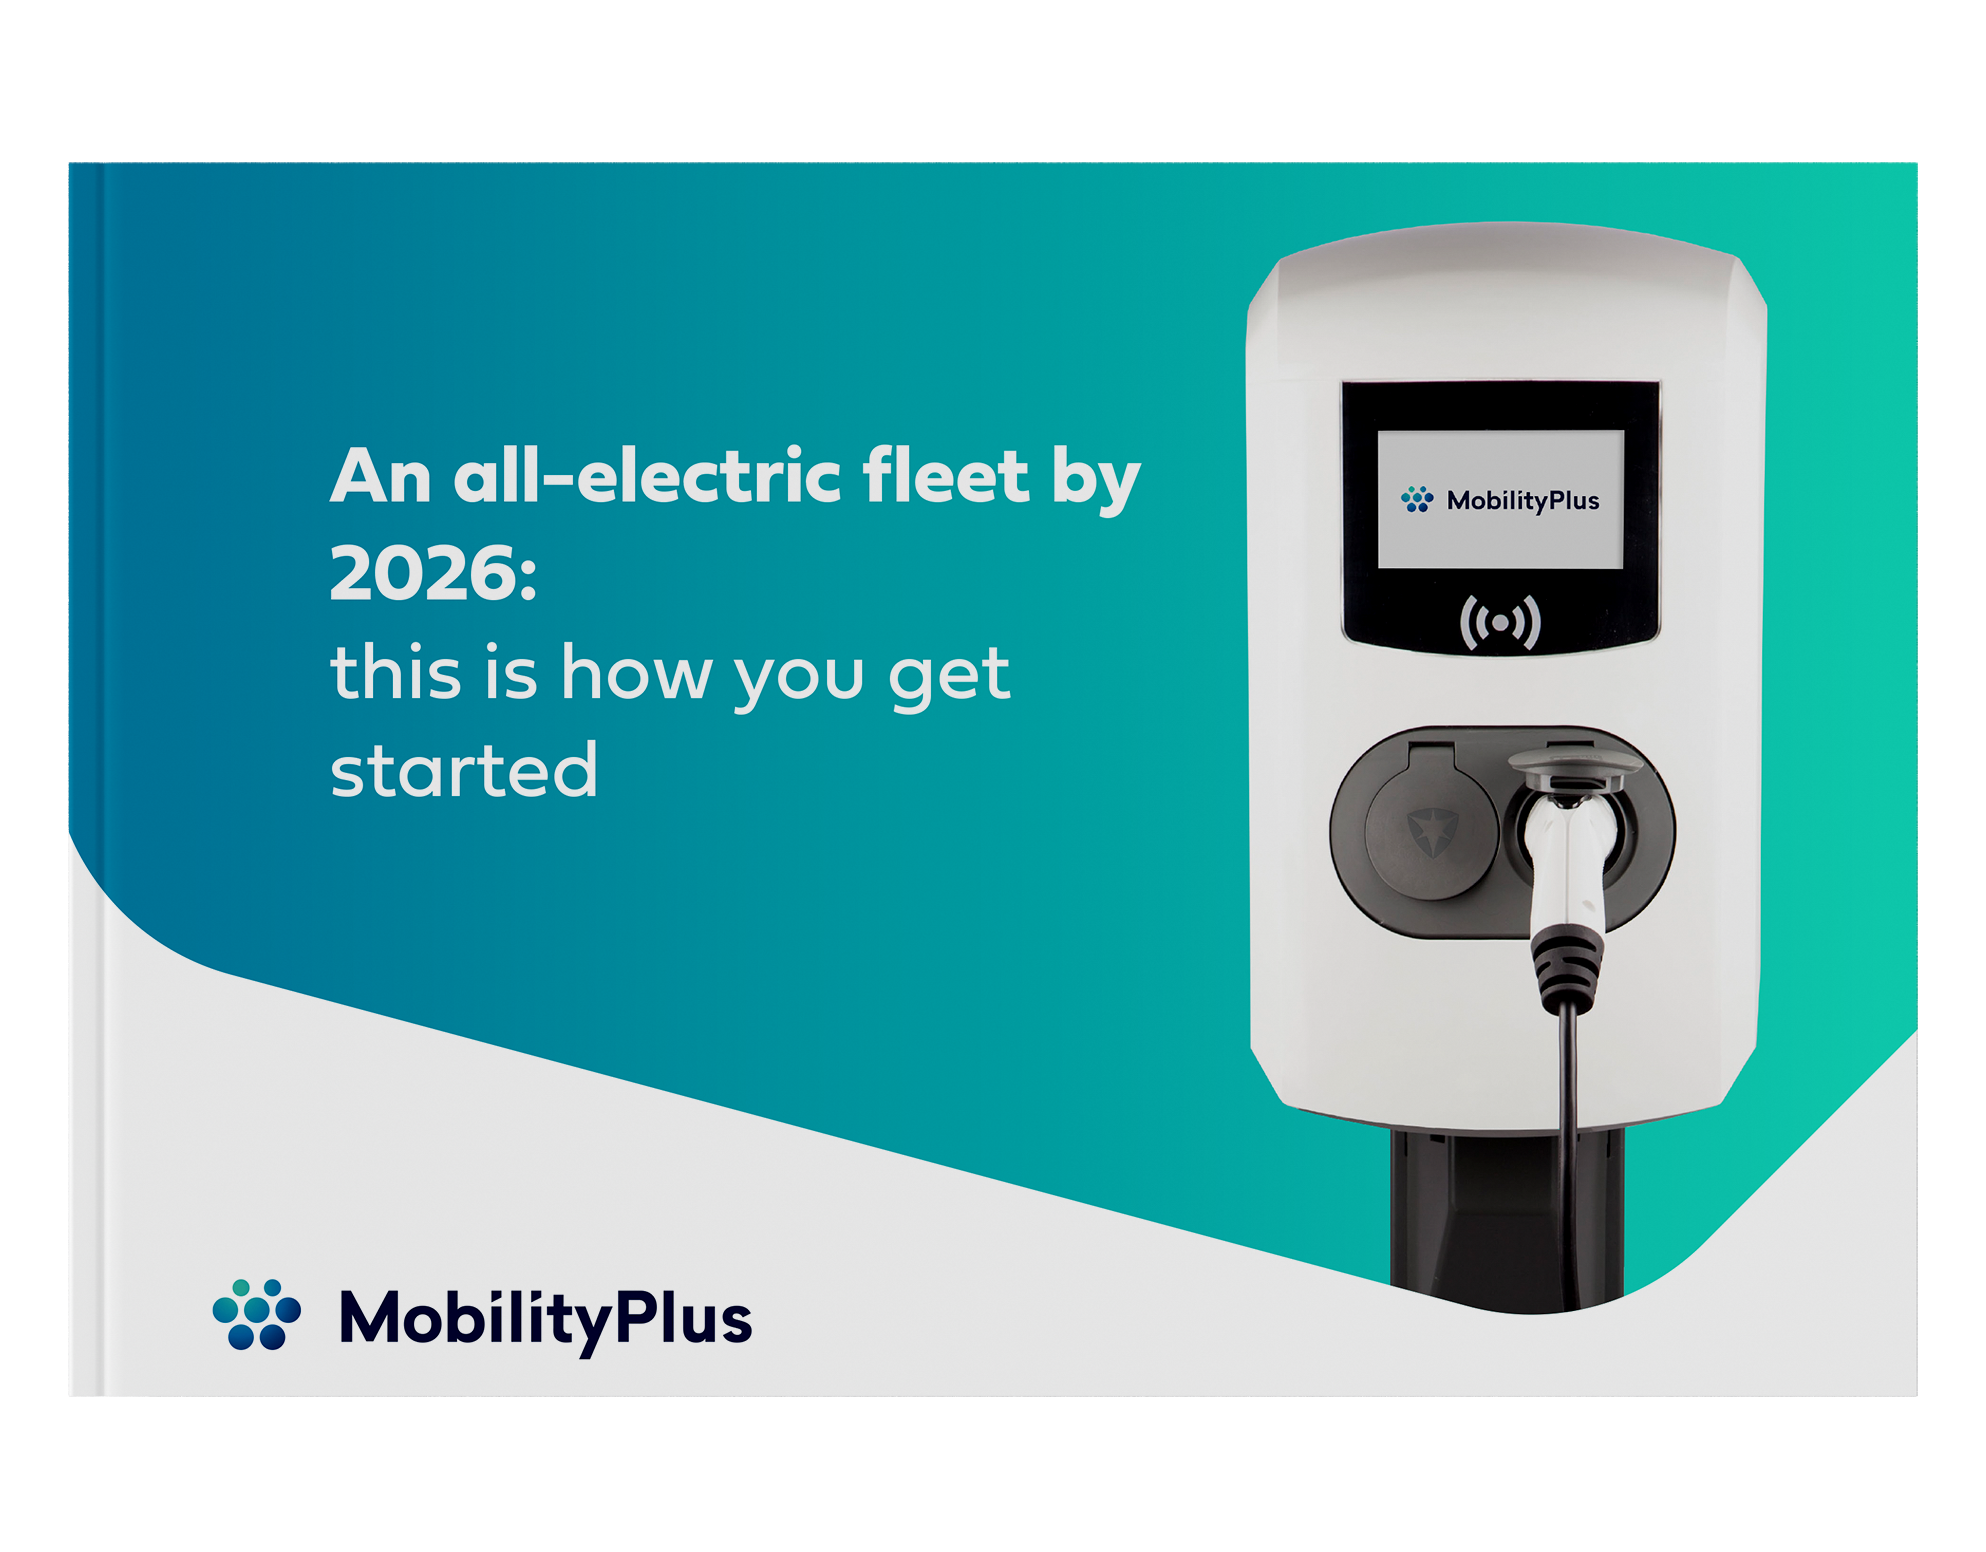 An all-electric fleet by 2026: this is how you get started